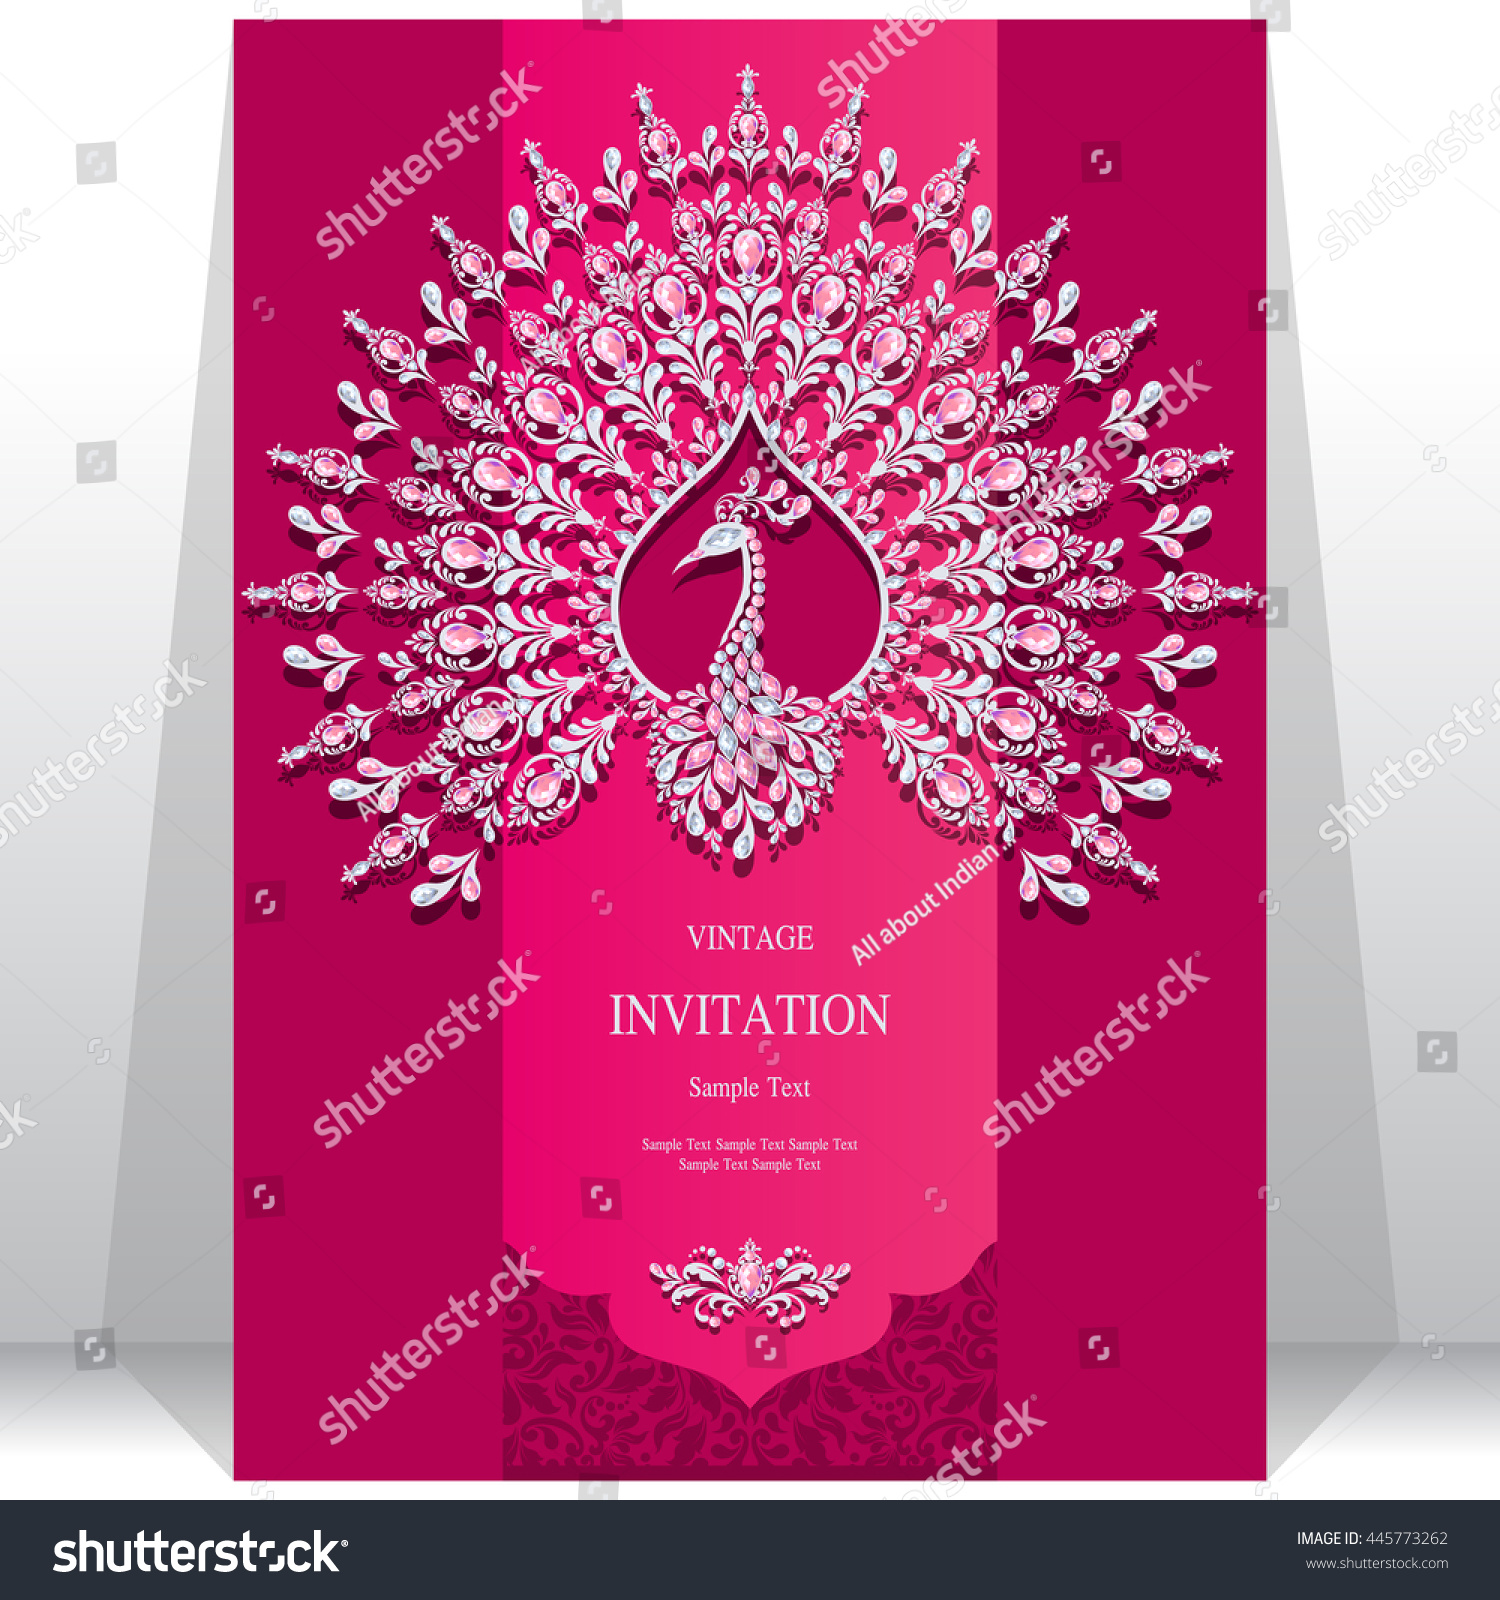 Wedding invitation or card with abstract background Islam Arabic Indian Dubai